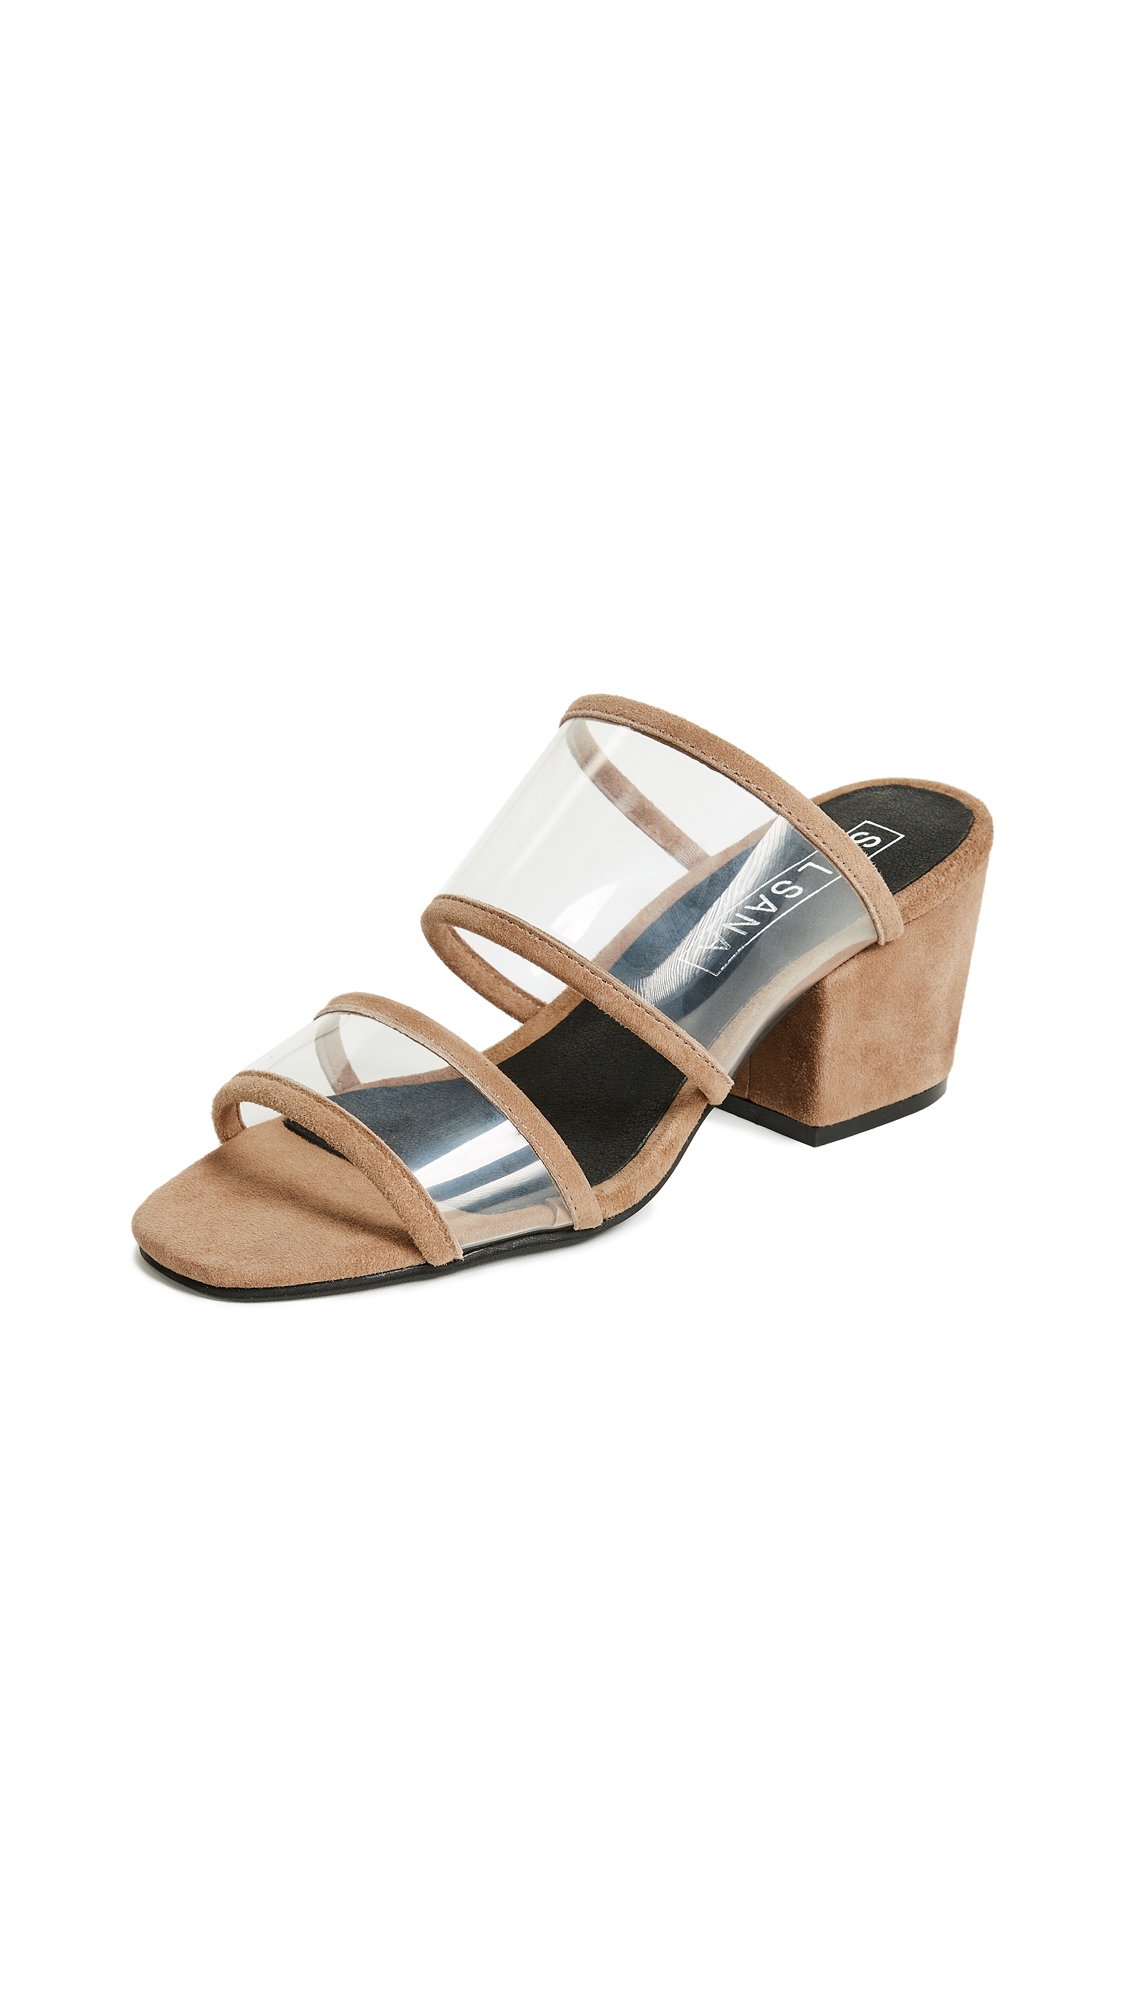 Sol Sana Ziggy Mule Sandals - Tan